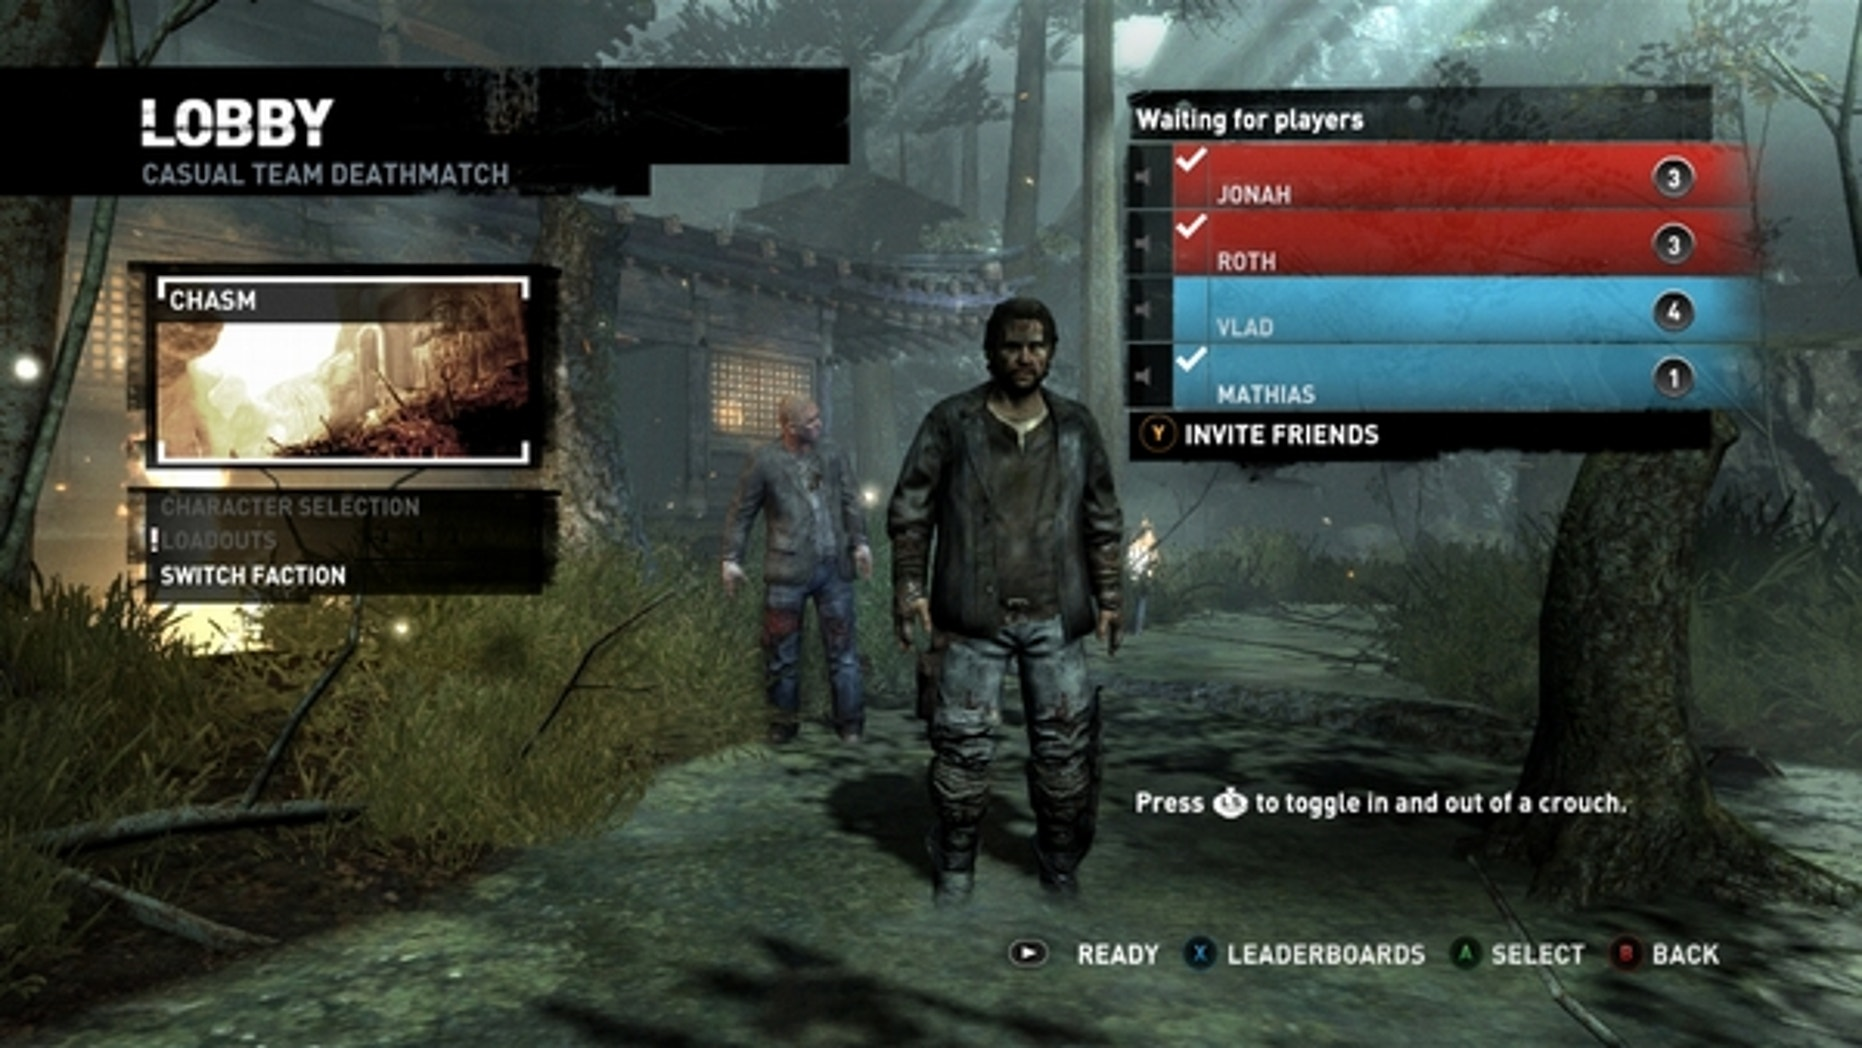 The multiplayer mode is an entire plot separate from the adventures of Lara Croft.